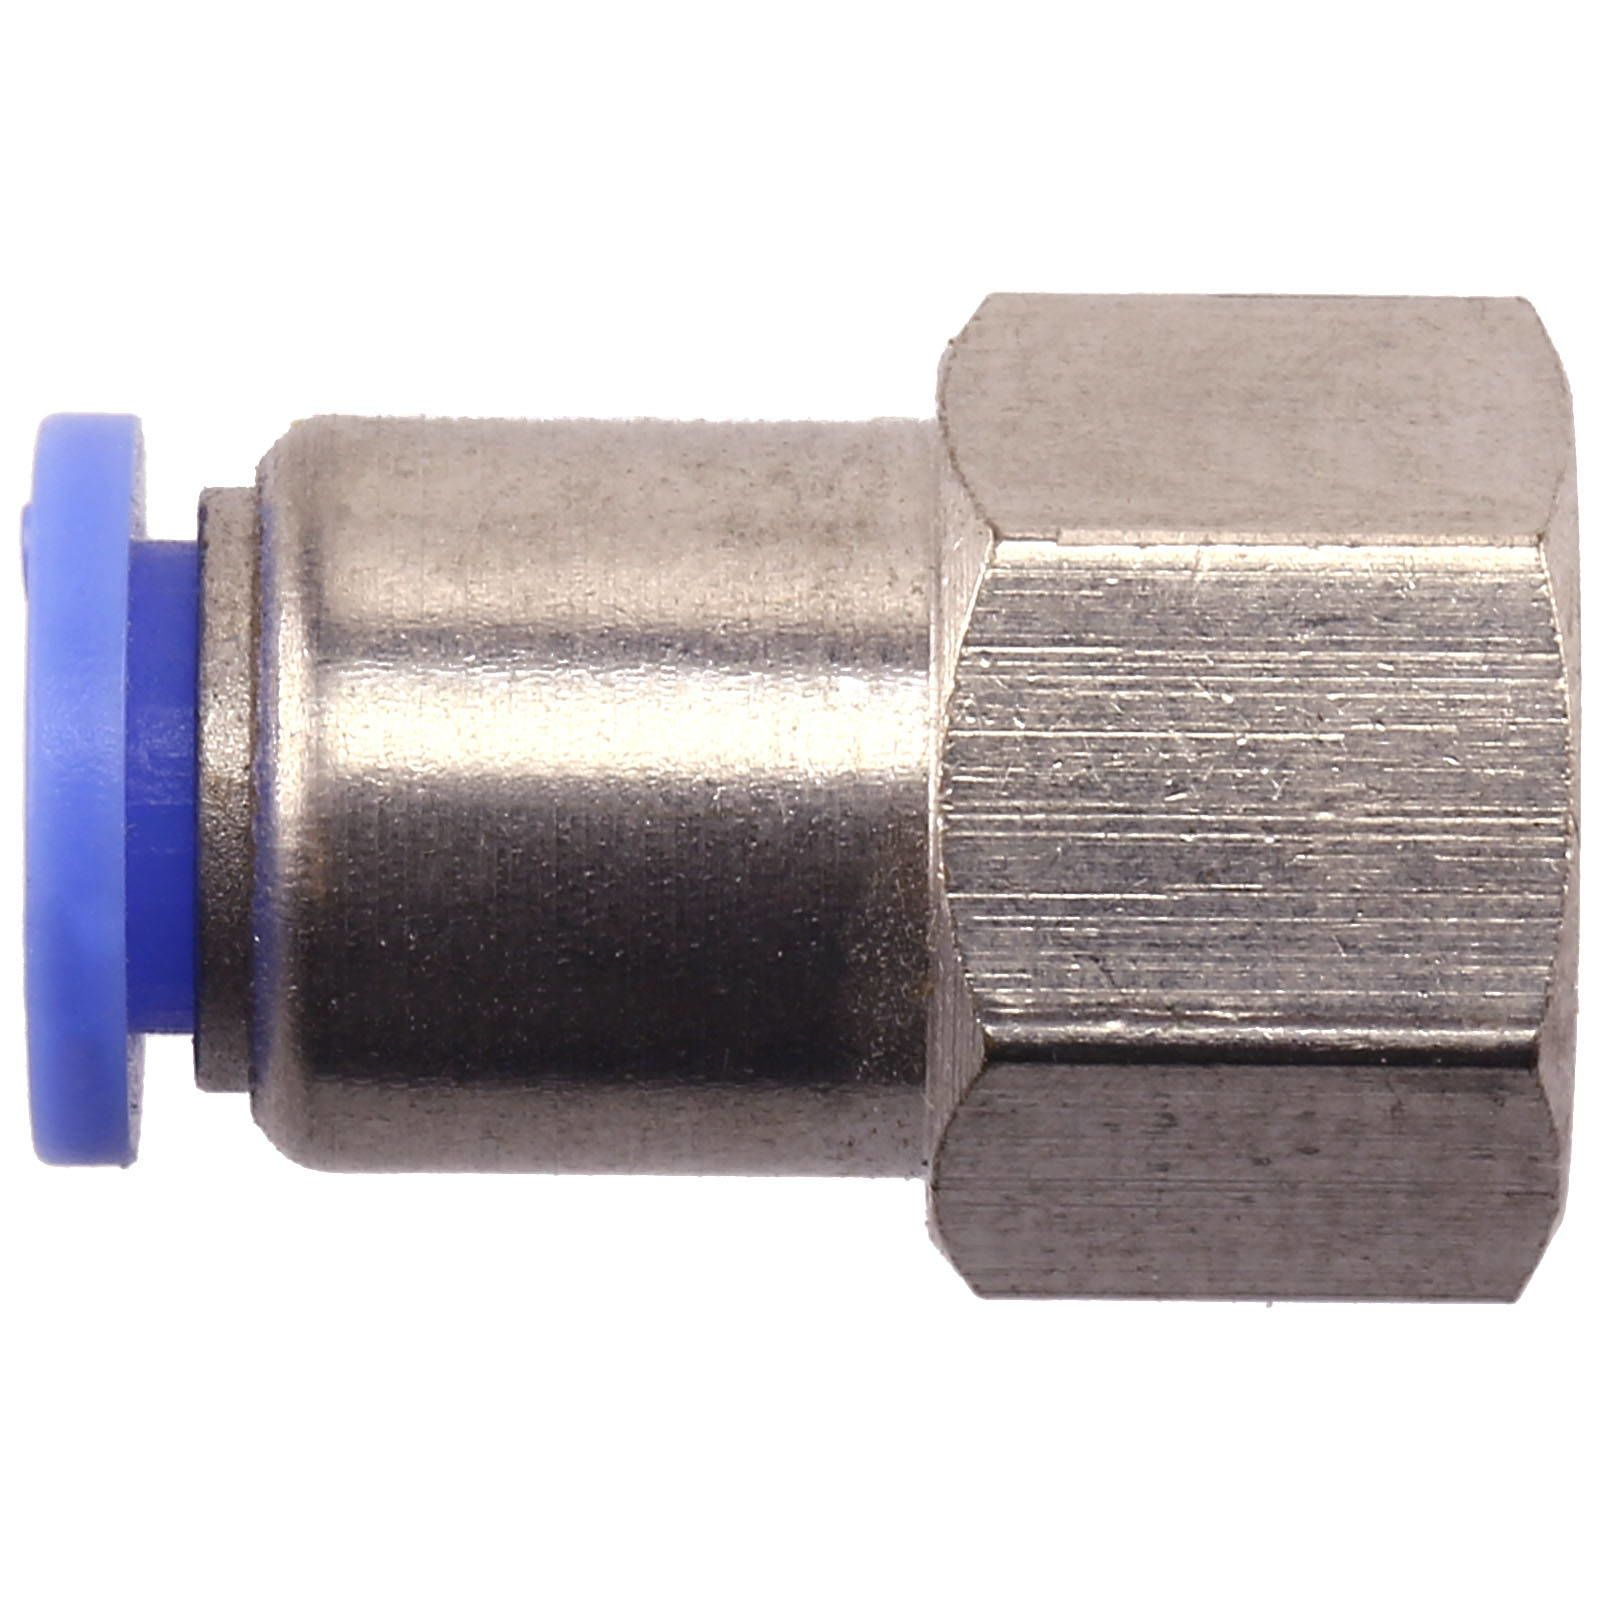 Aquasabi - Straight push in fitting - G1/8 x 6 mm